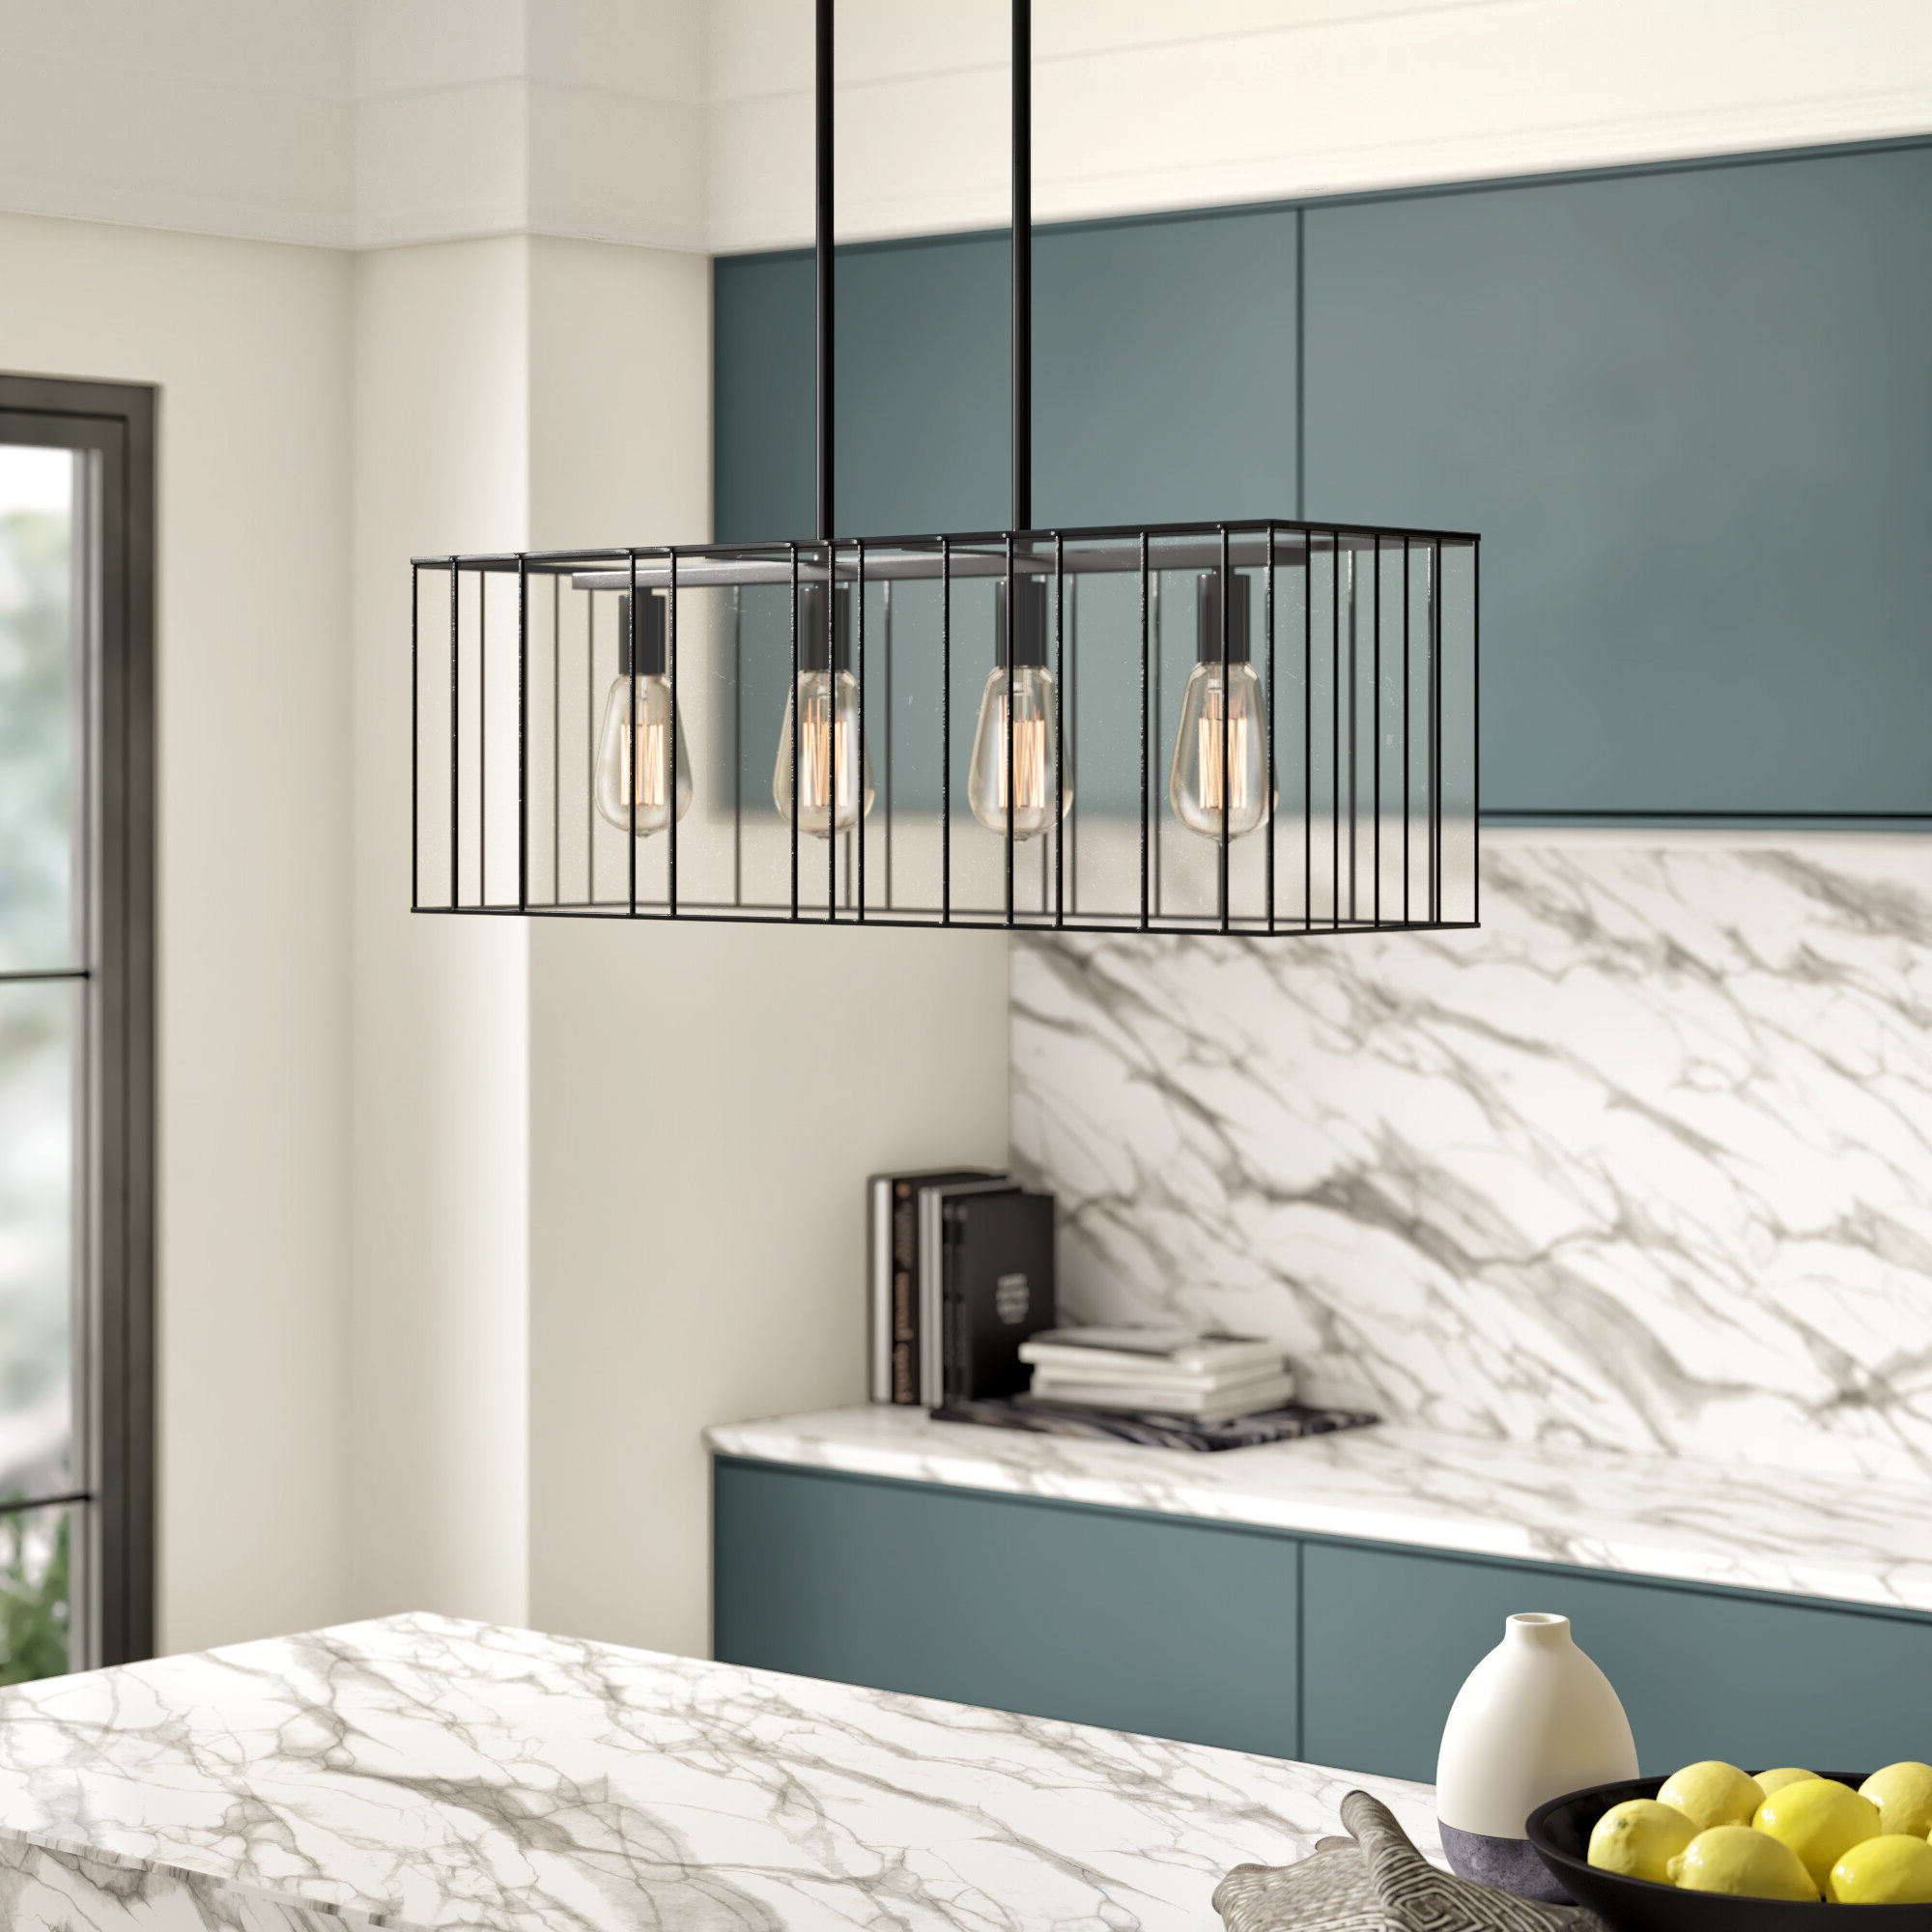 Byford 4 Light Kitchen Island Linear Pendant Intended For 2019 Odie 8 Light Kitchen Island Square / Rectangle Pendants (View 2 of 20)